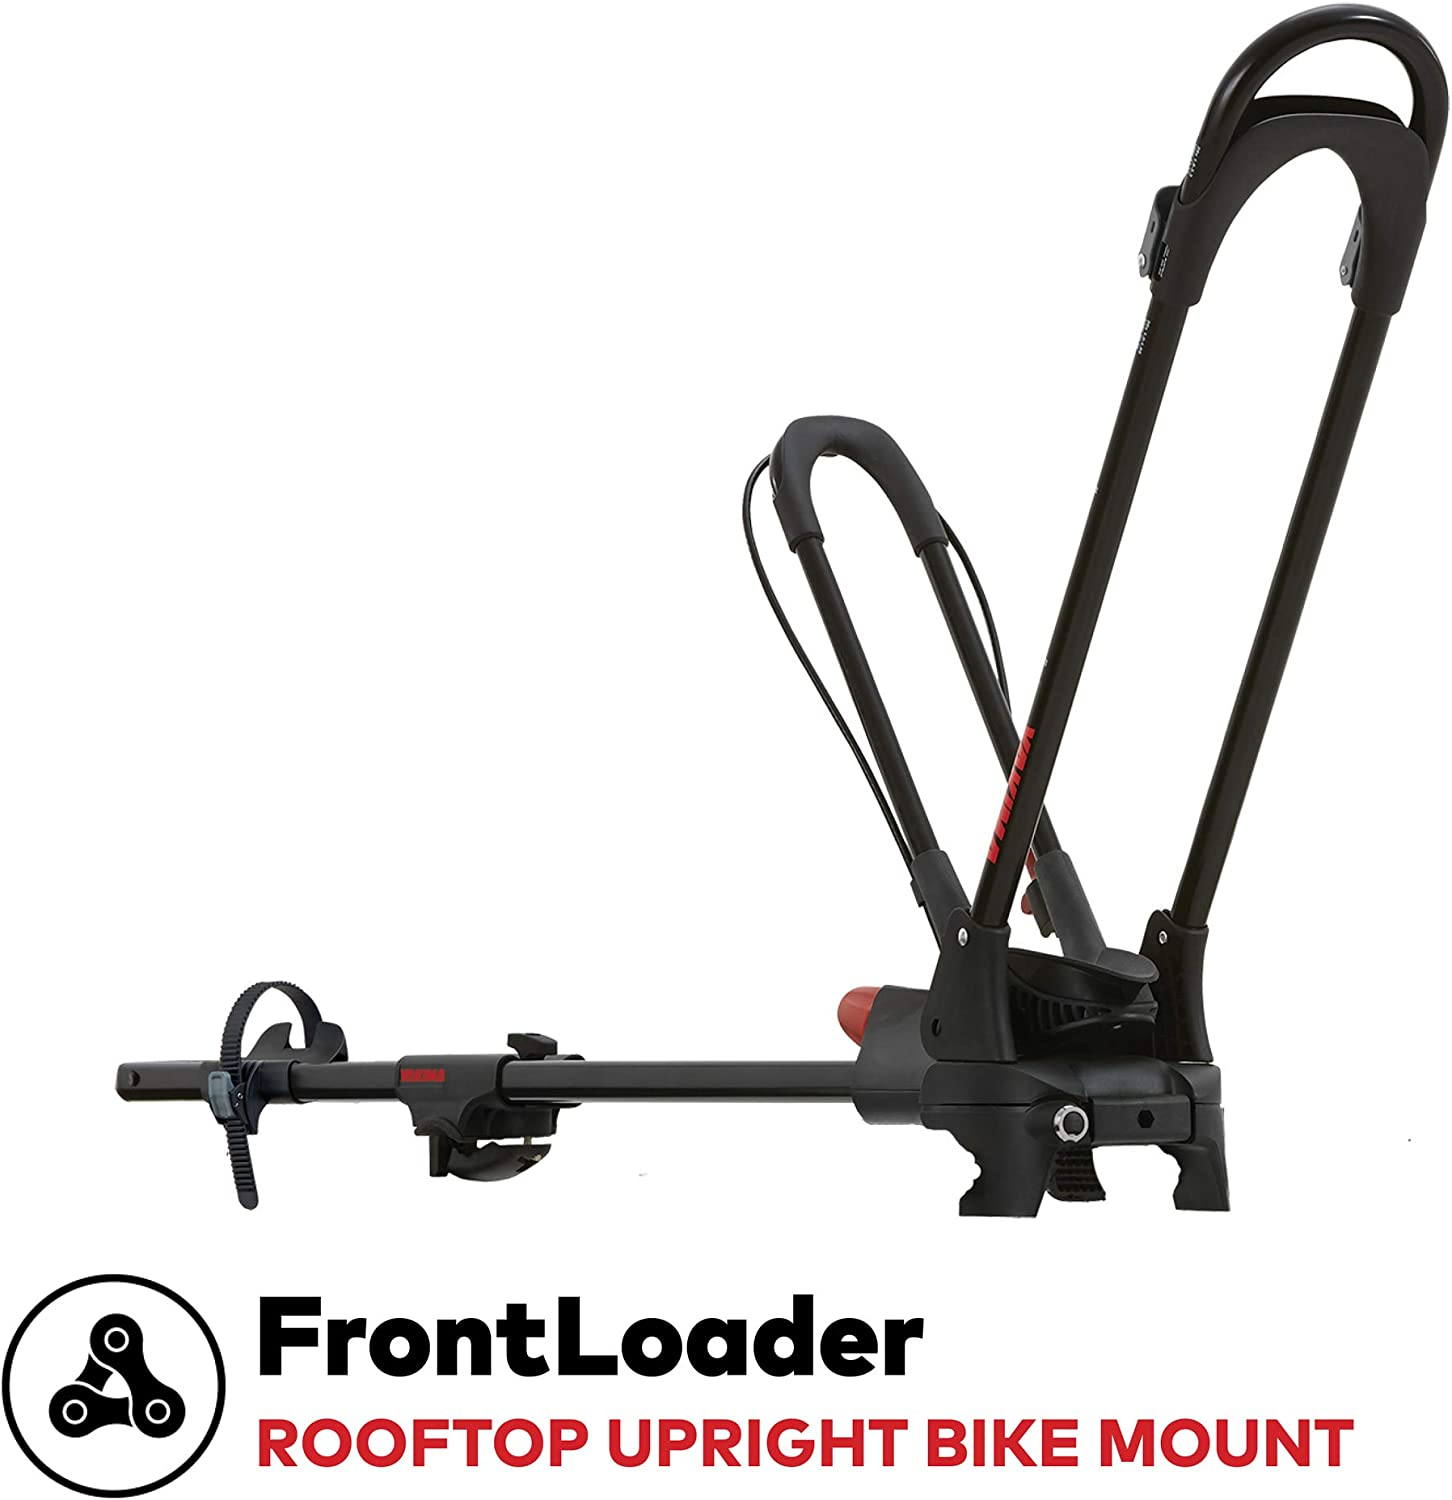 3. Yakima FrontLoader Wheel Mount Bike Carrier